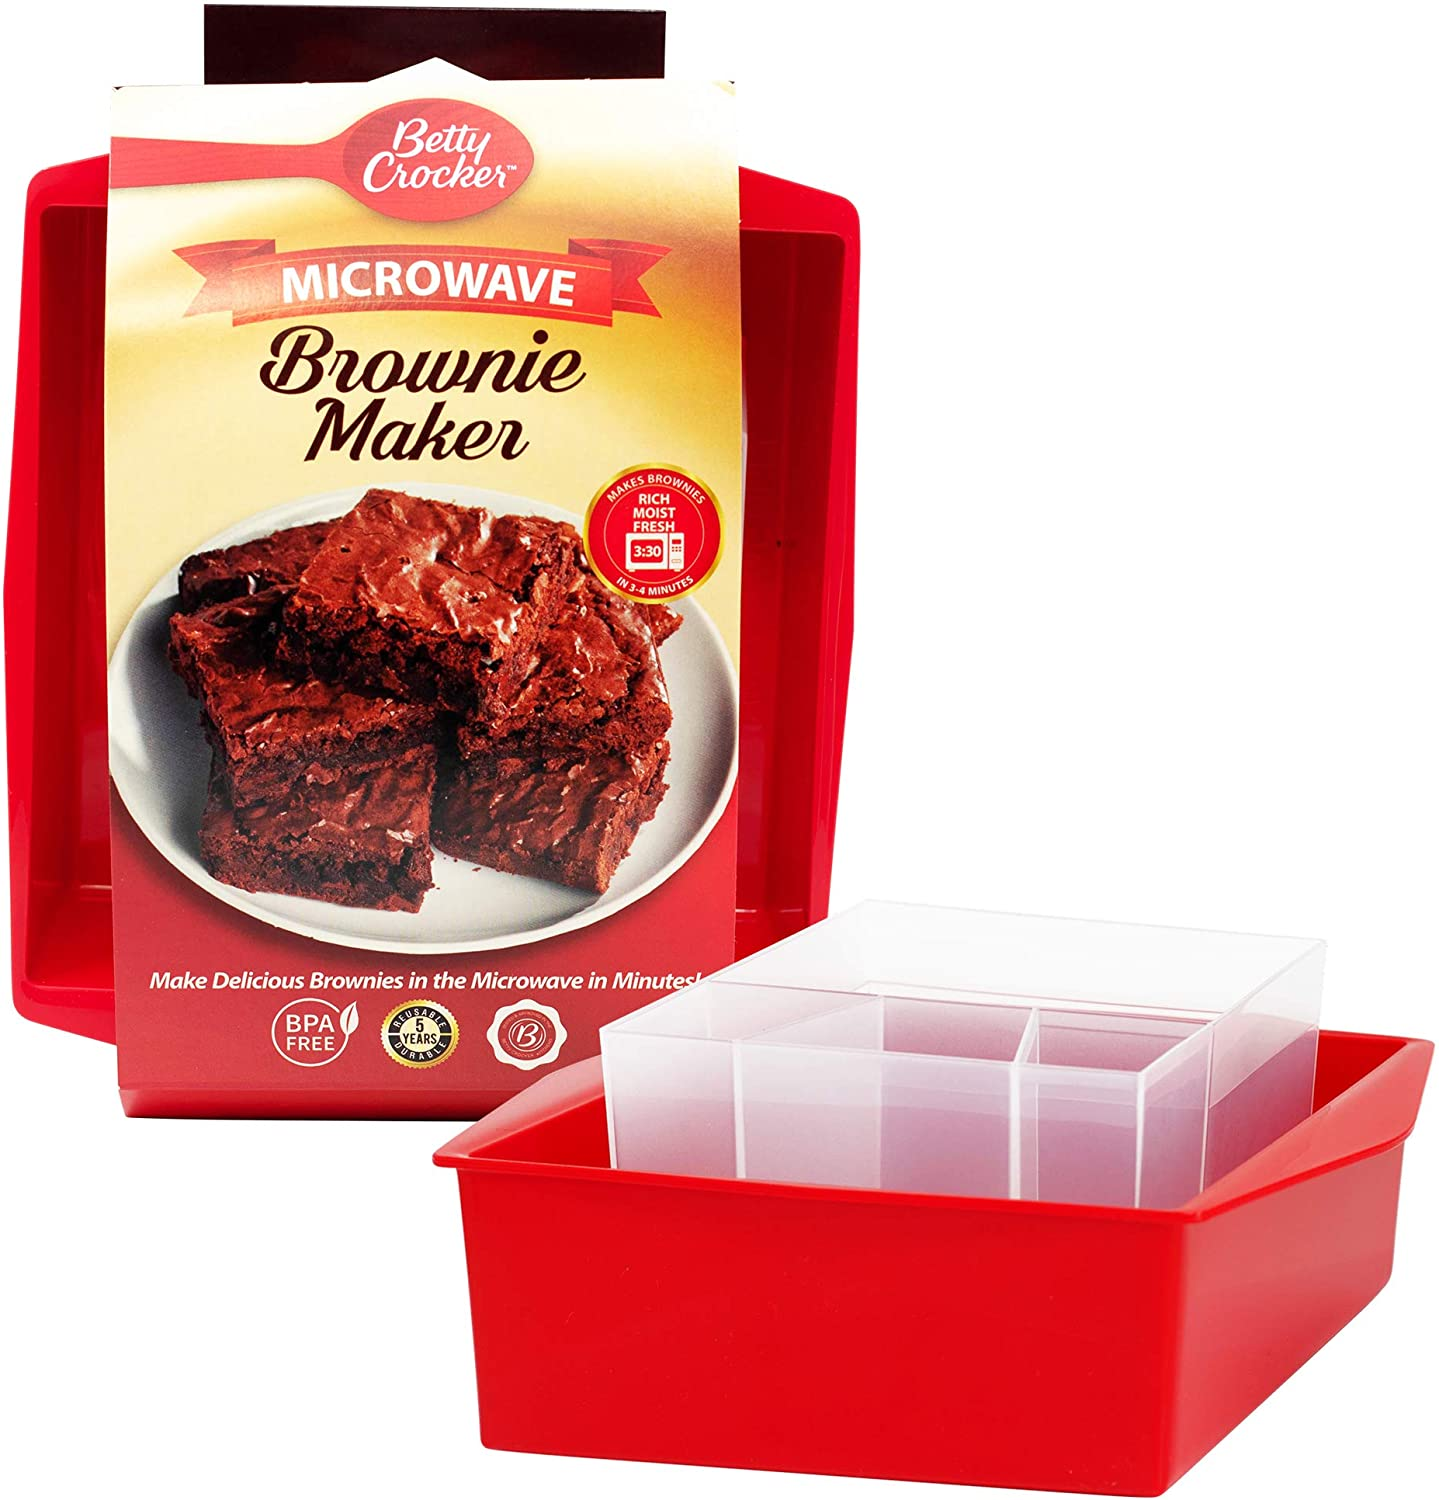 Amazon Com Betty Crocker Rapid Brownie Maker Microwave Delicious Brownies In 4 Minutes Perfect For Dorm Small Kitchen Or Office Dishwasher Safe Microwaveable Bpa Free Kitchen Dining